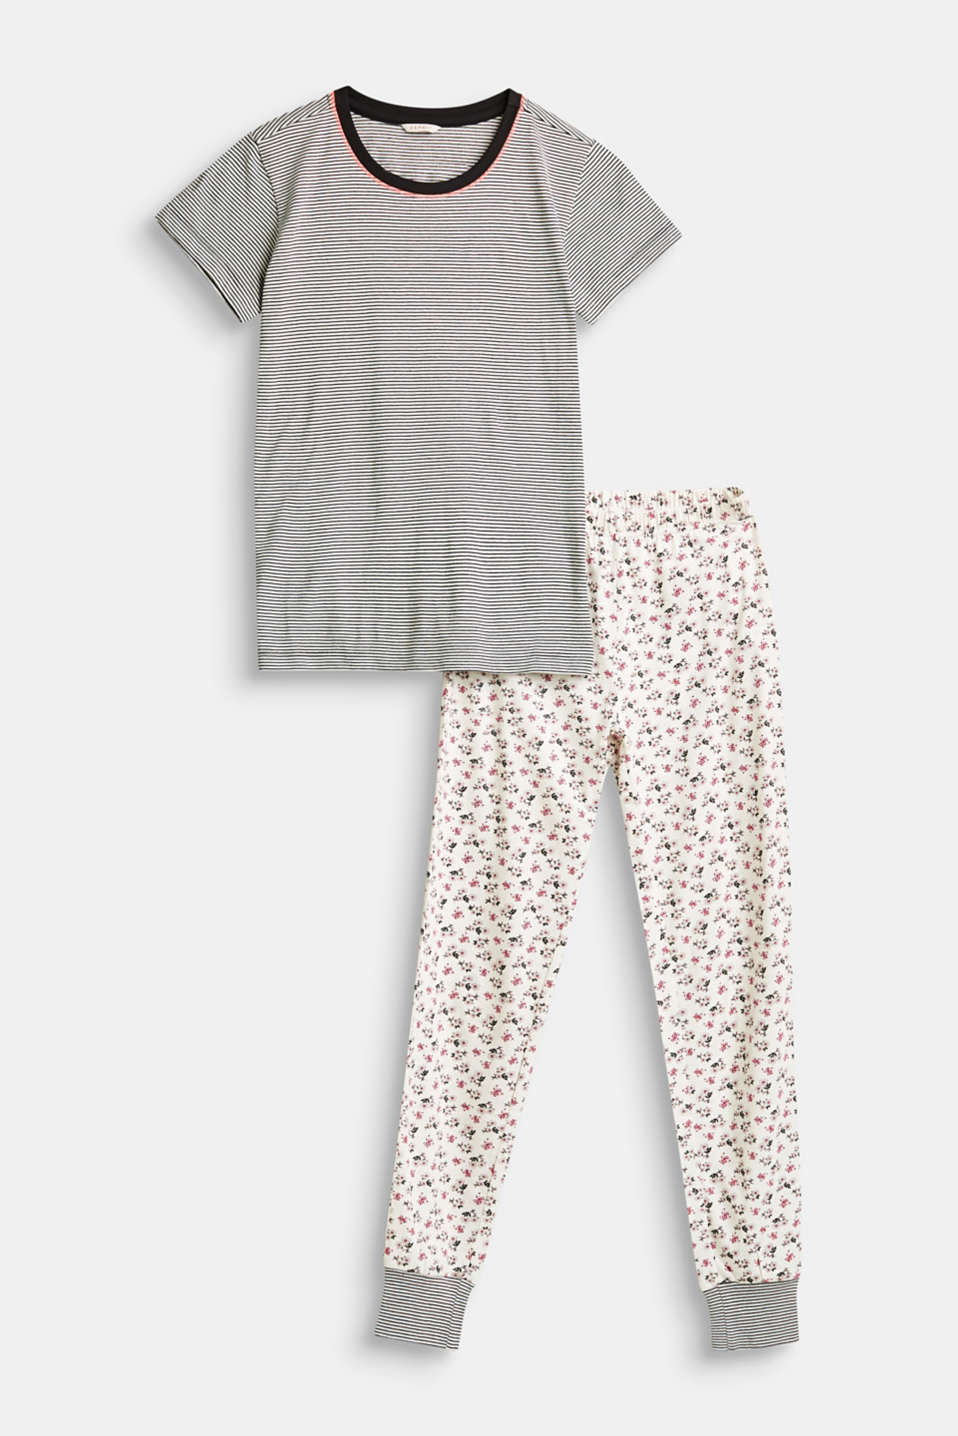 Esprit - Jersey pyjamas with a print mix, 100% cotton